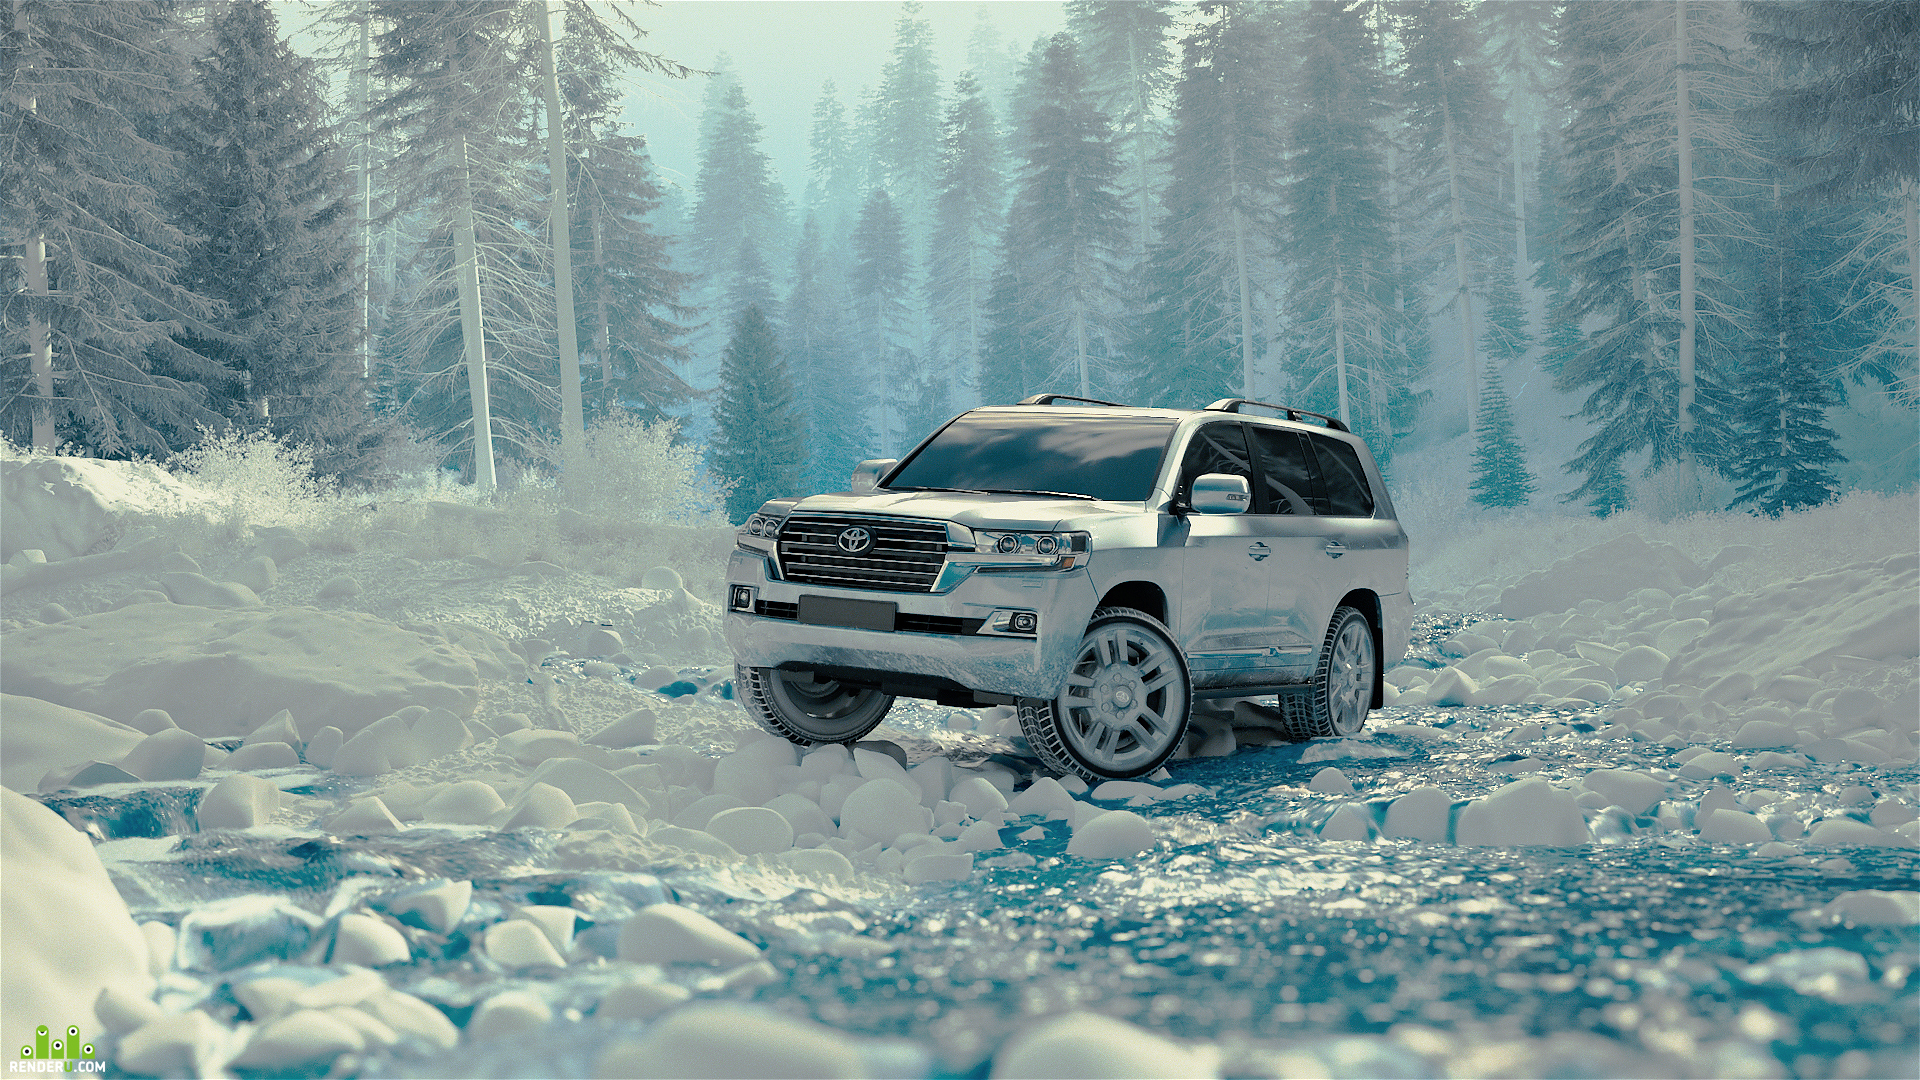 preview Toyota CG car and Environment